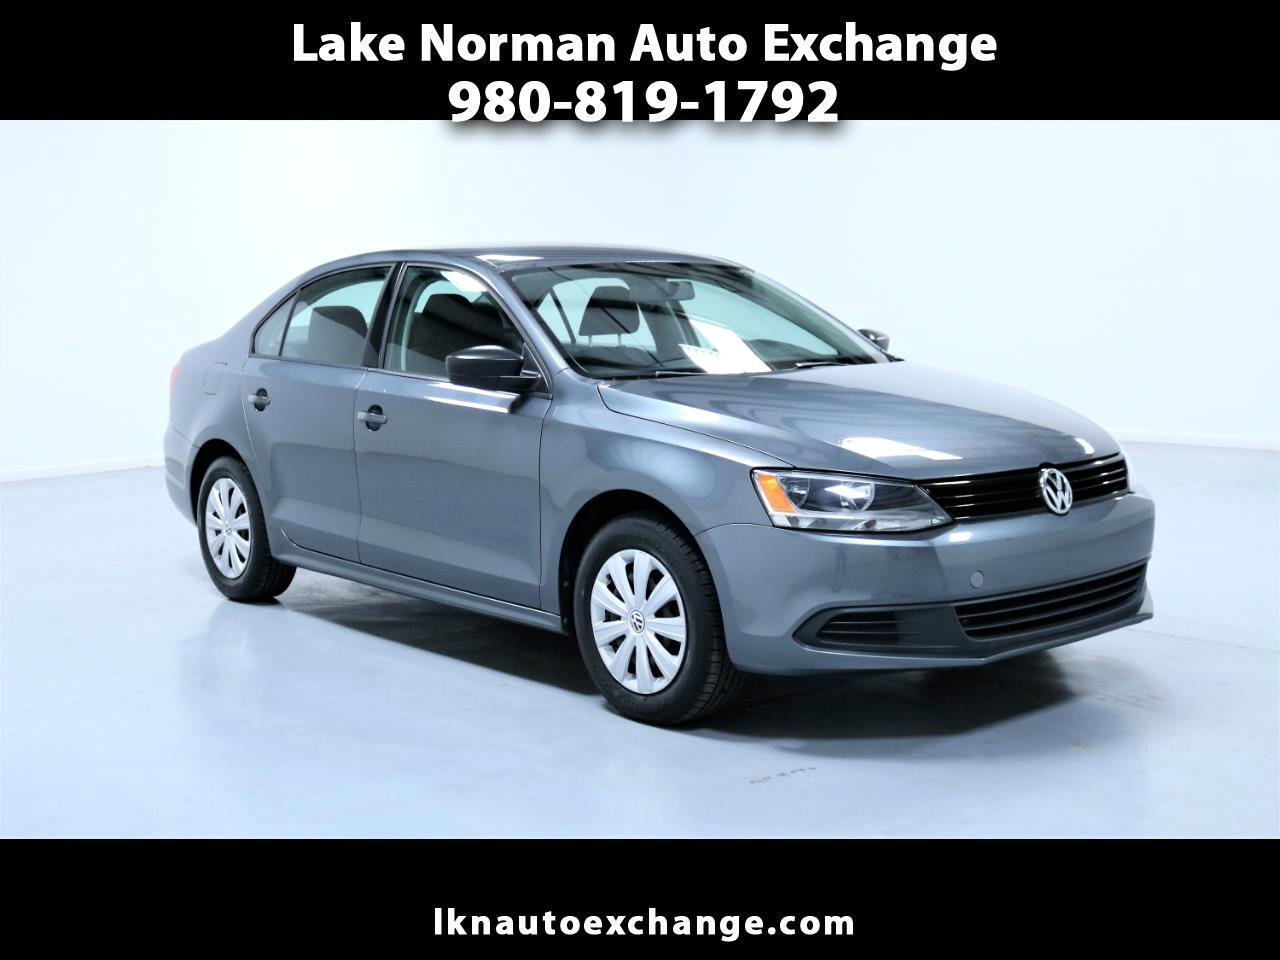 2014 Volkswagen Jetta Sedan 4dr 2.5L Manual